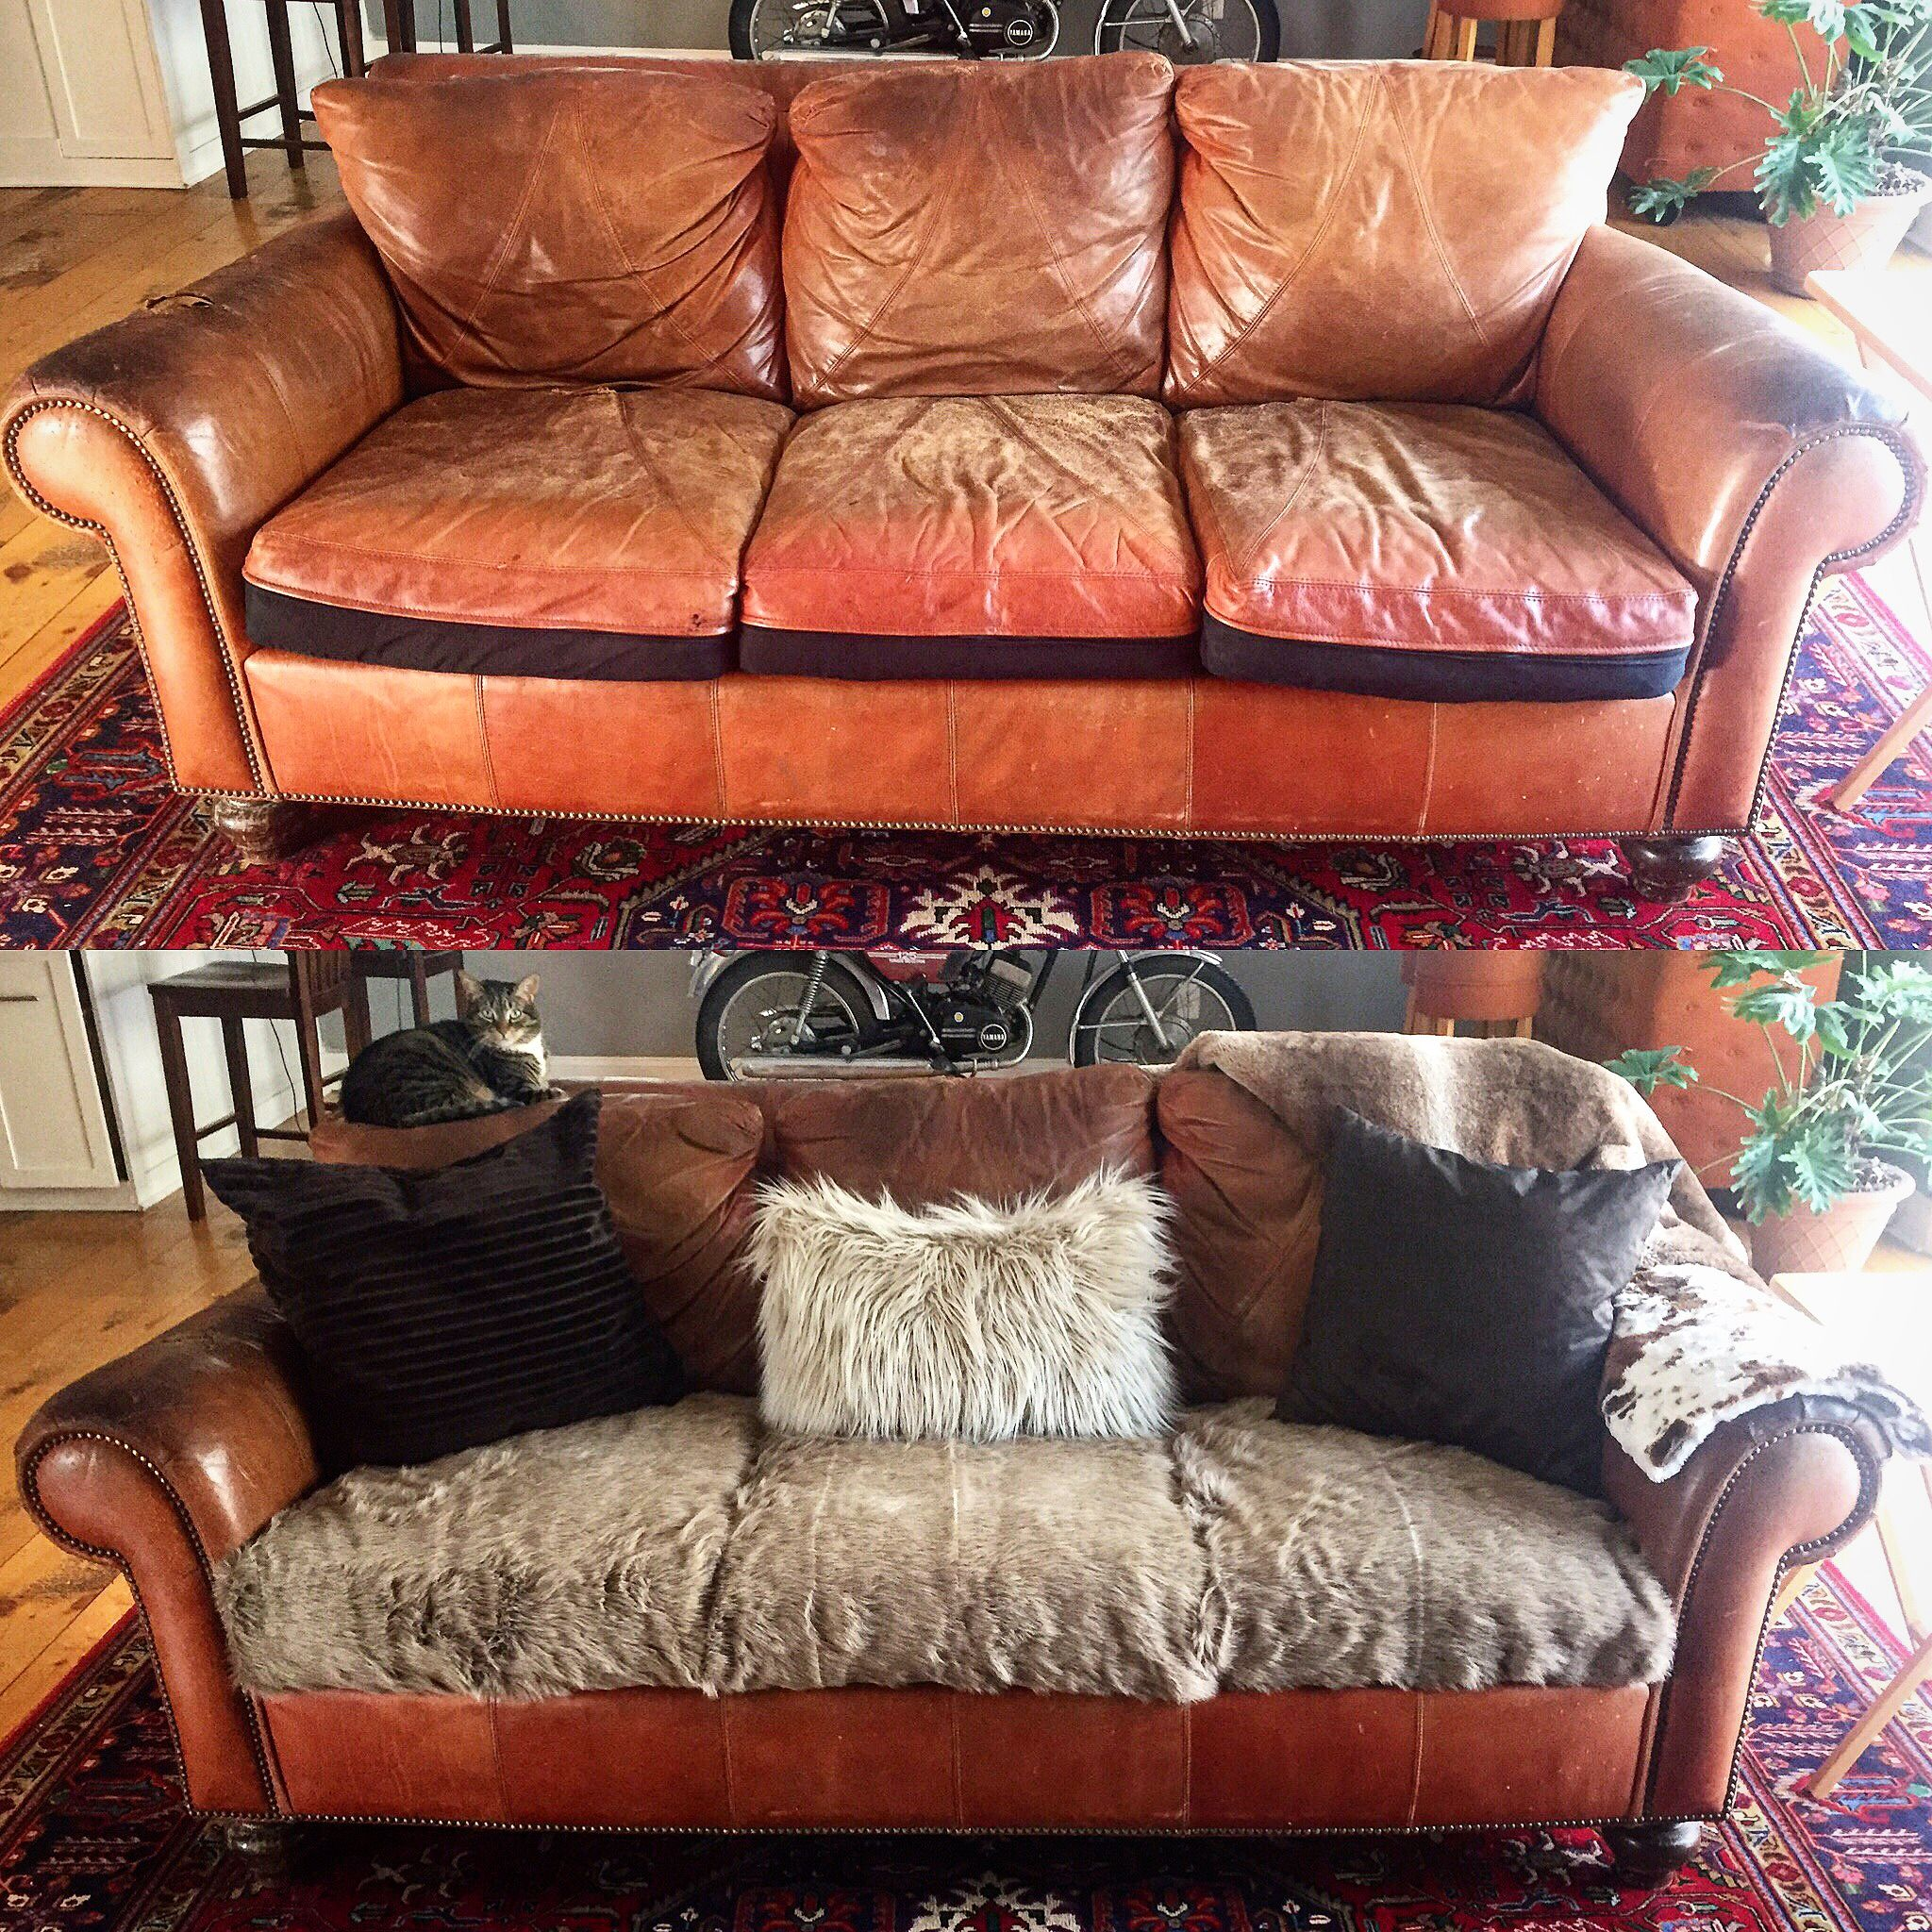 Charmant Couch Makeover U2022Recovered Couch Cushionsu2022 Vintage Leather Couchu2022 Faux Furu2022  Furniture Revivalu2022